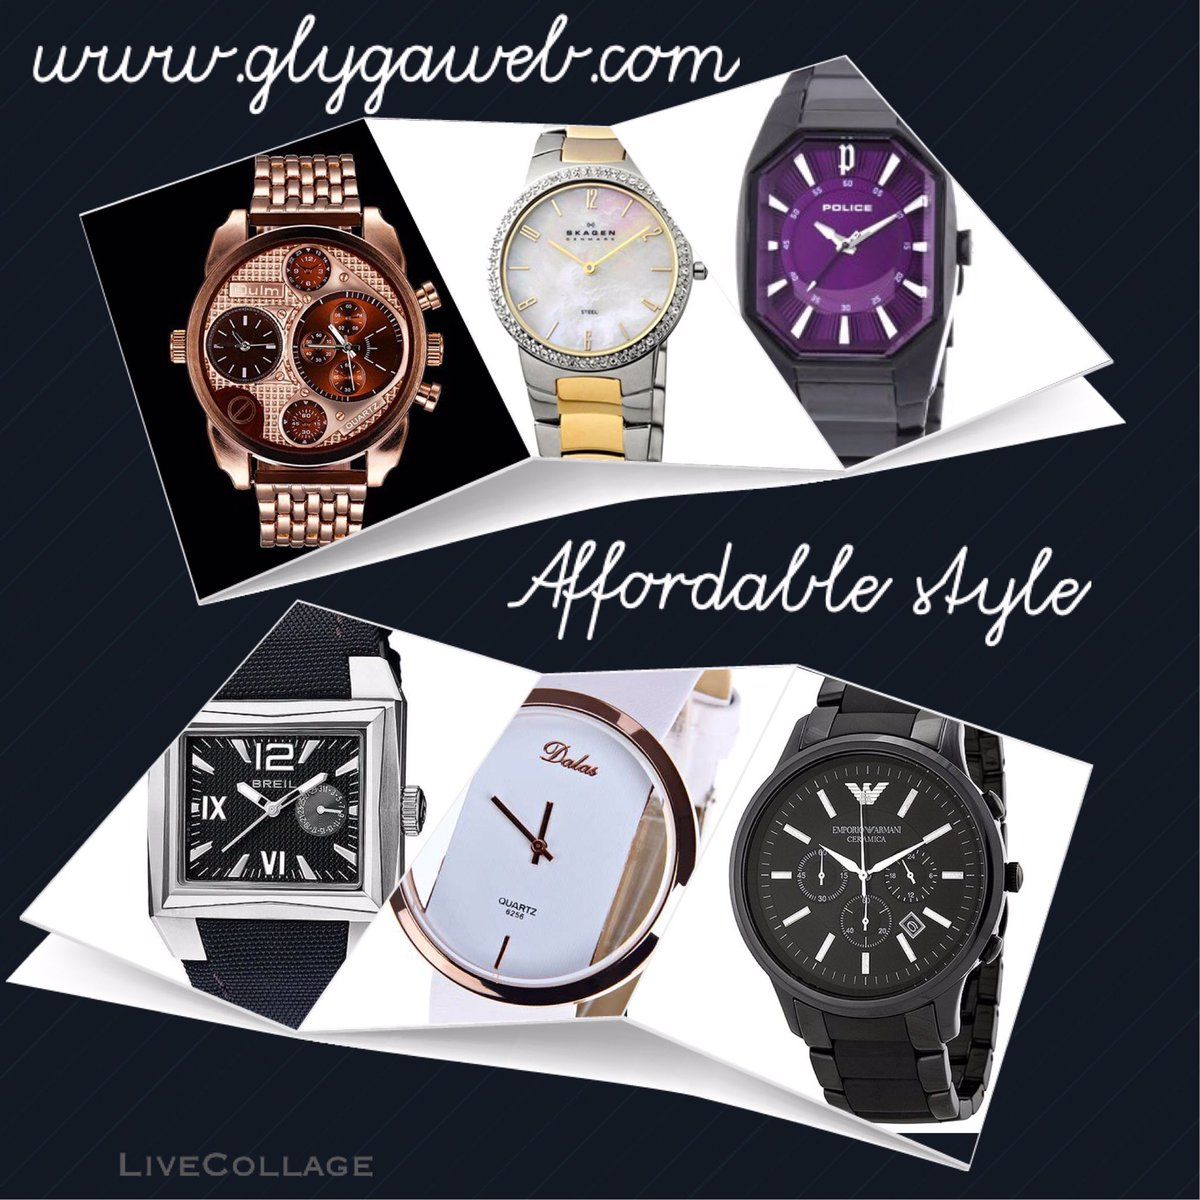 Looking for a new #designer #timepiece ? #watch #watches #style #beauty #luxury #tech #wristwatch #armani #skagen #d&amp;g #superdry <br>http://pic.twitter.com/m1F9kw65Vi